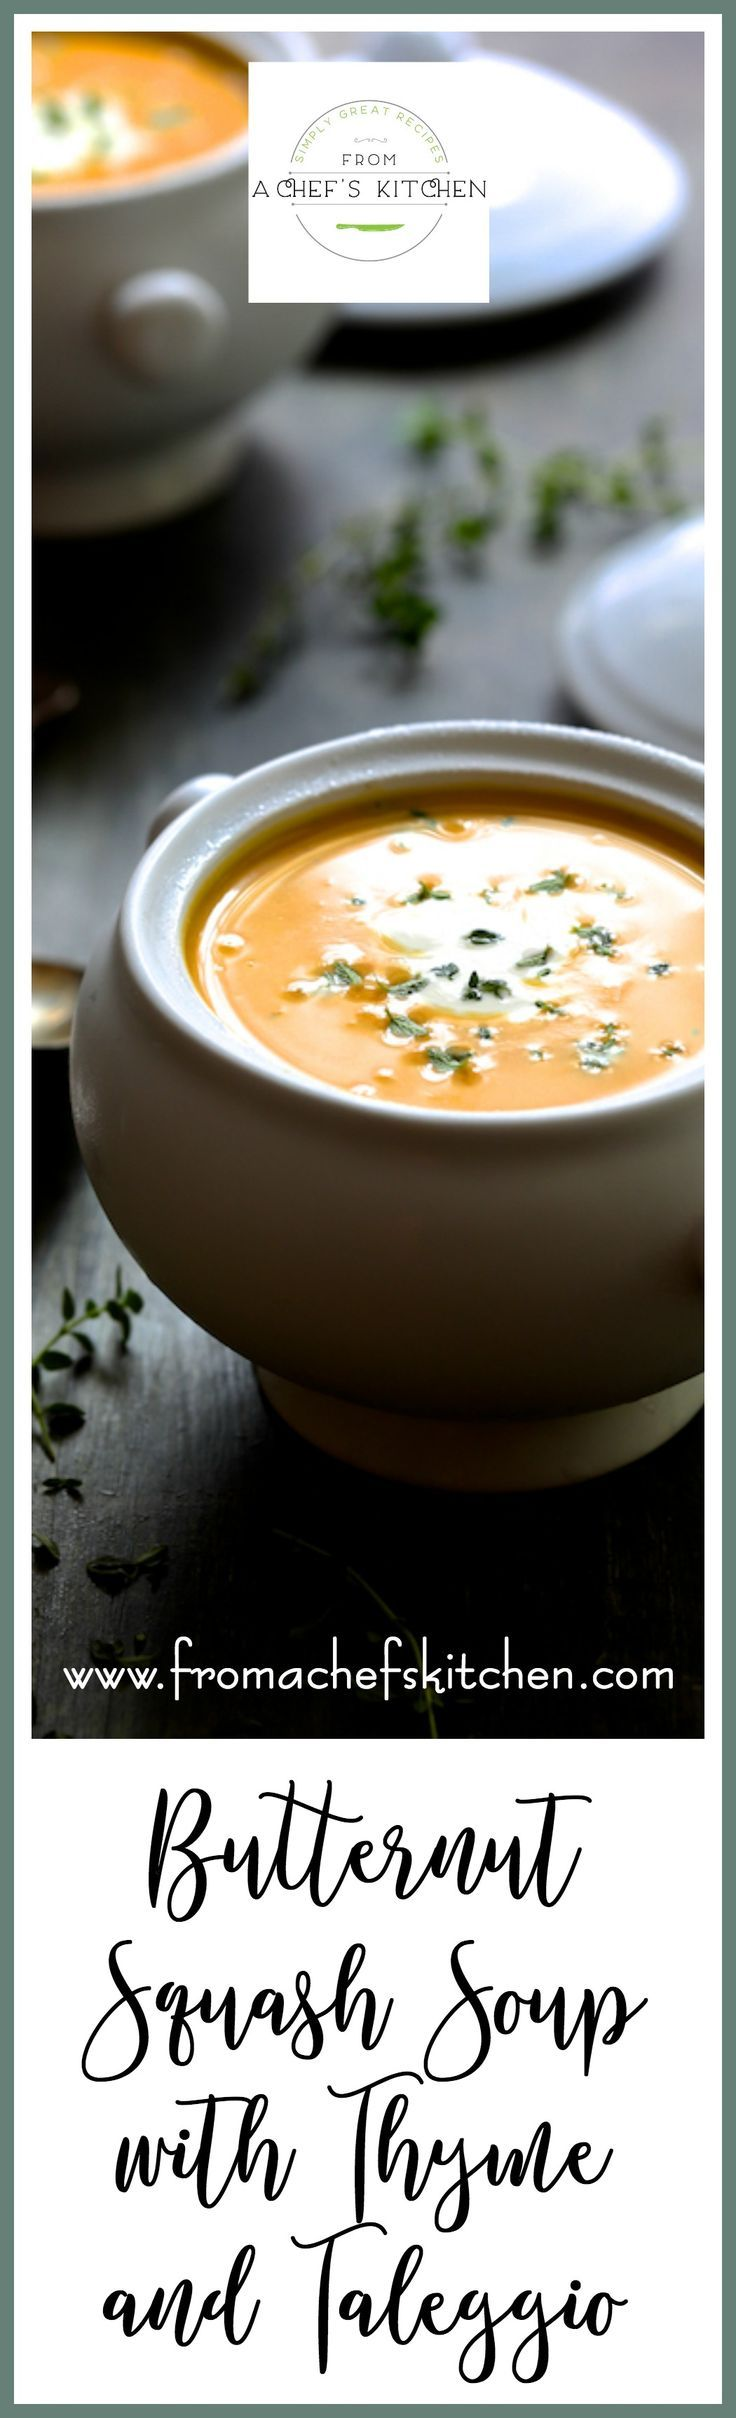 Butternut Squash Soup with Thyme and Taleggio is an elegant, rich and creamy soup that's perfect to serve this fall and winter! via @chefcarolb